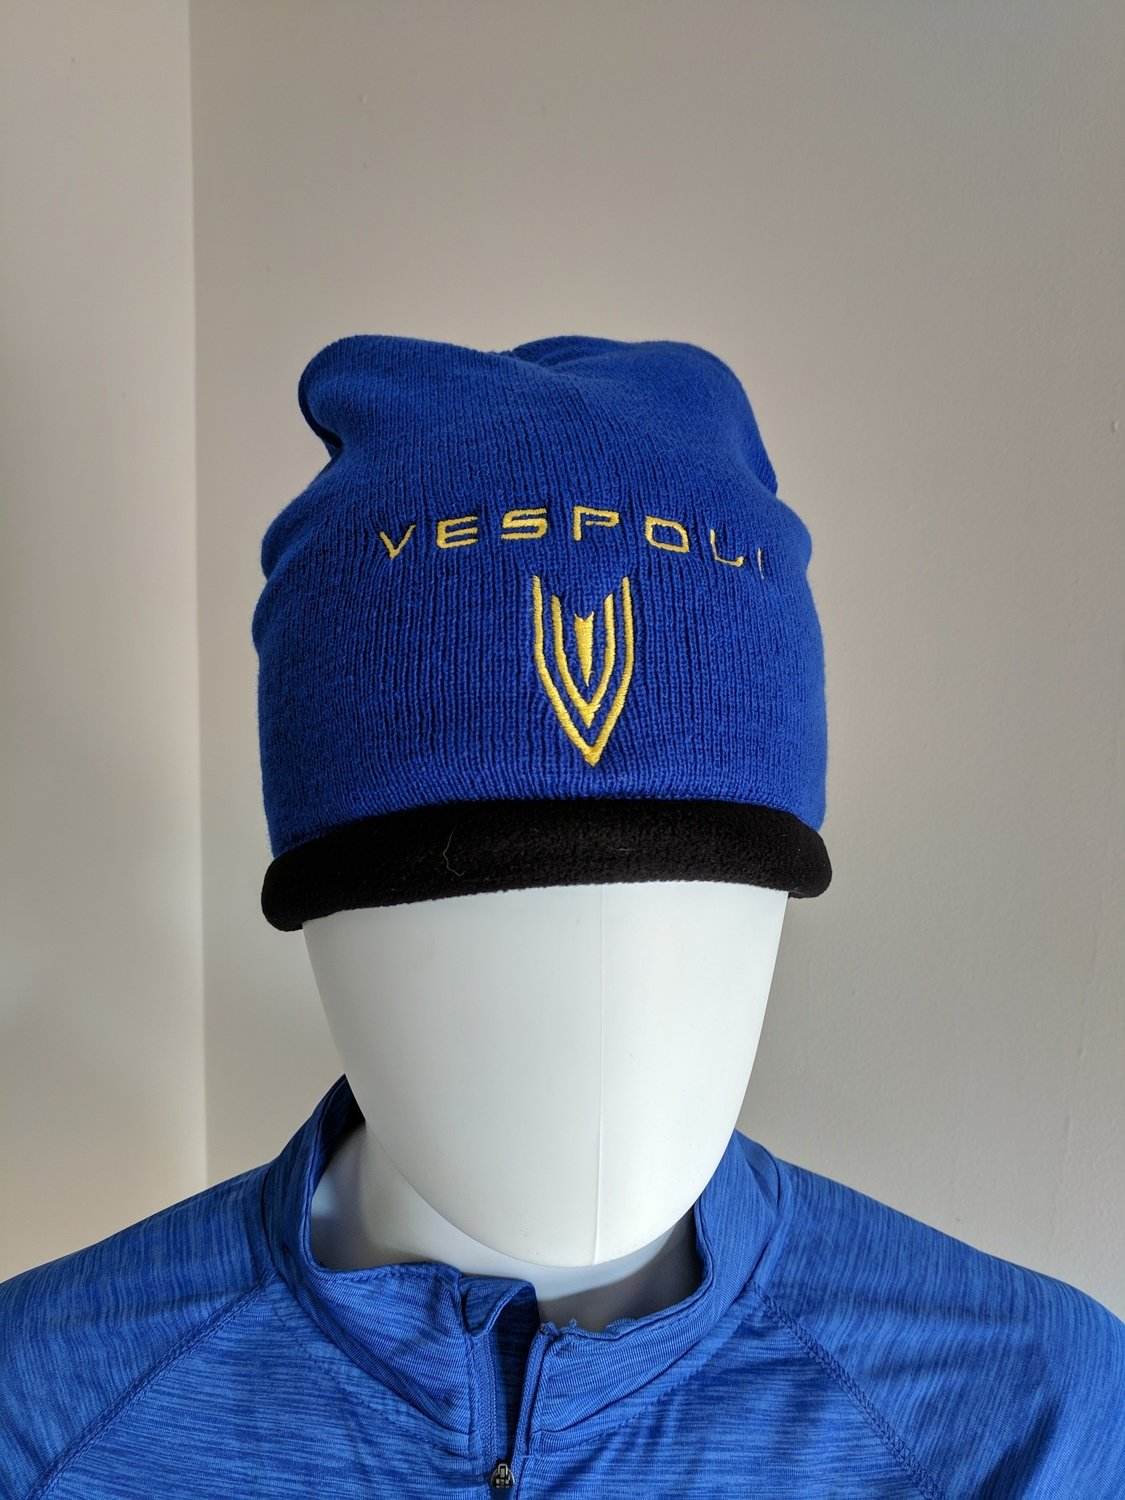 Ski Cap, Fleece Lined, VESPOLI, Blue